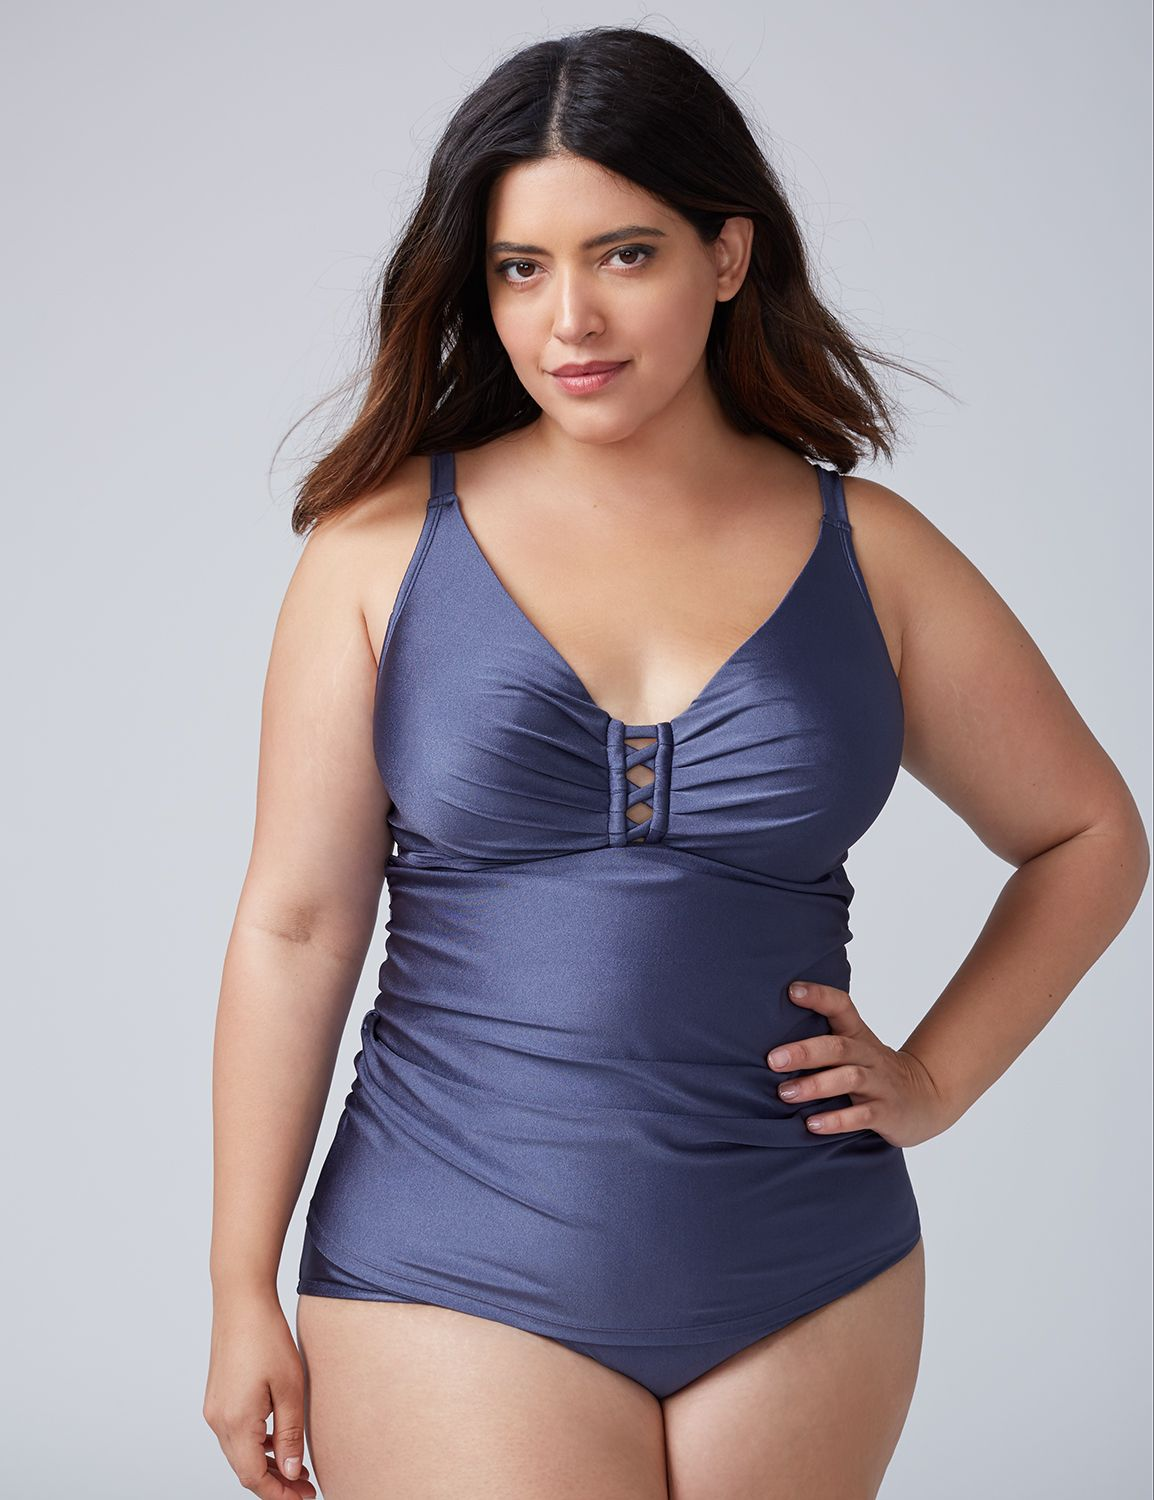 -Lane Bryant Women's Shimmer Criss-Cross Swim Tankini Top With Built-In Balconette Bra 46DDD Indigo